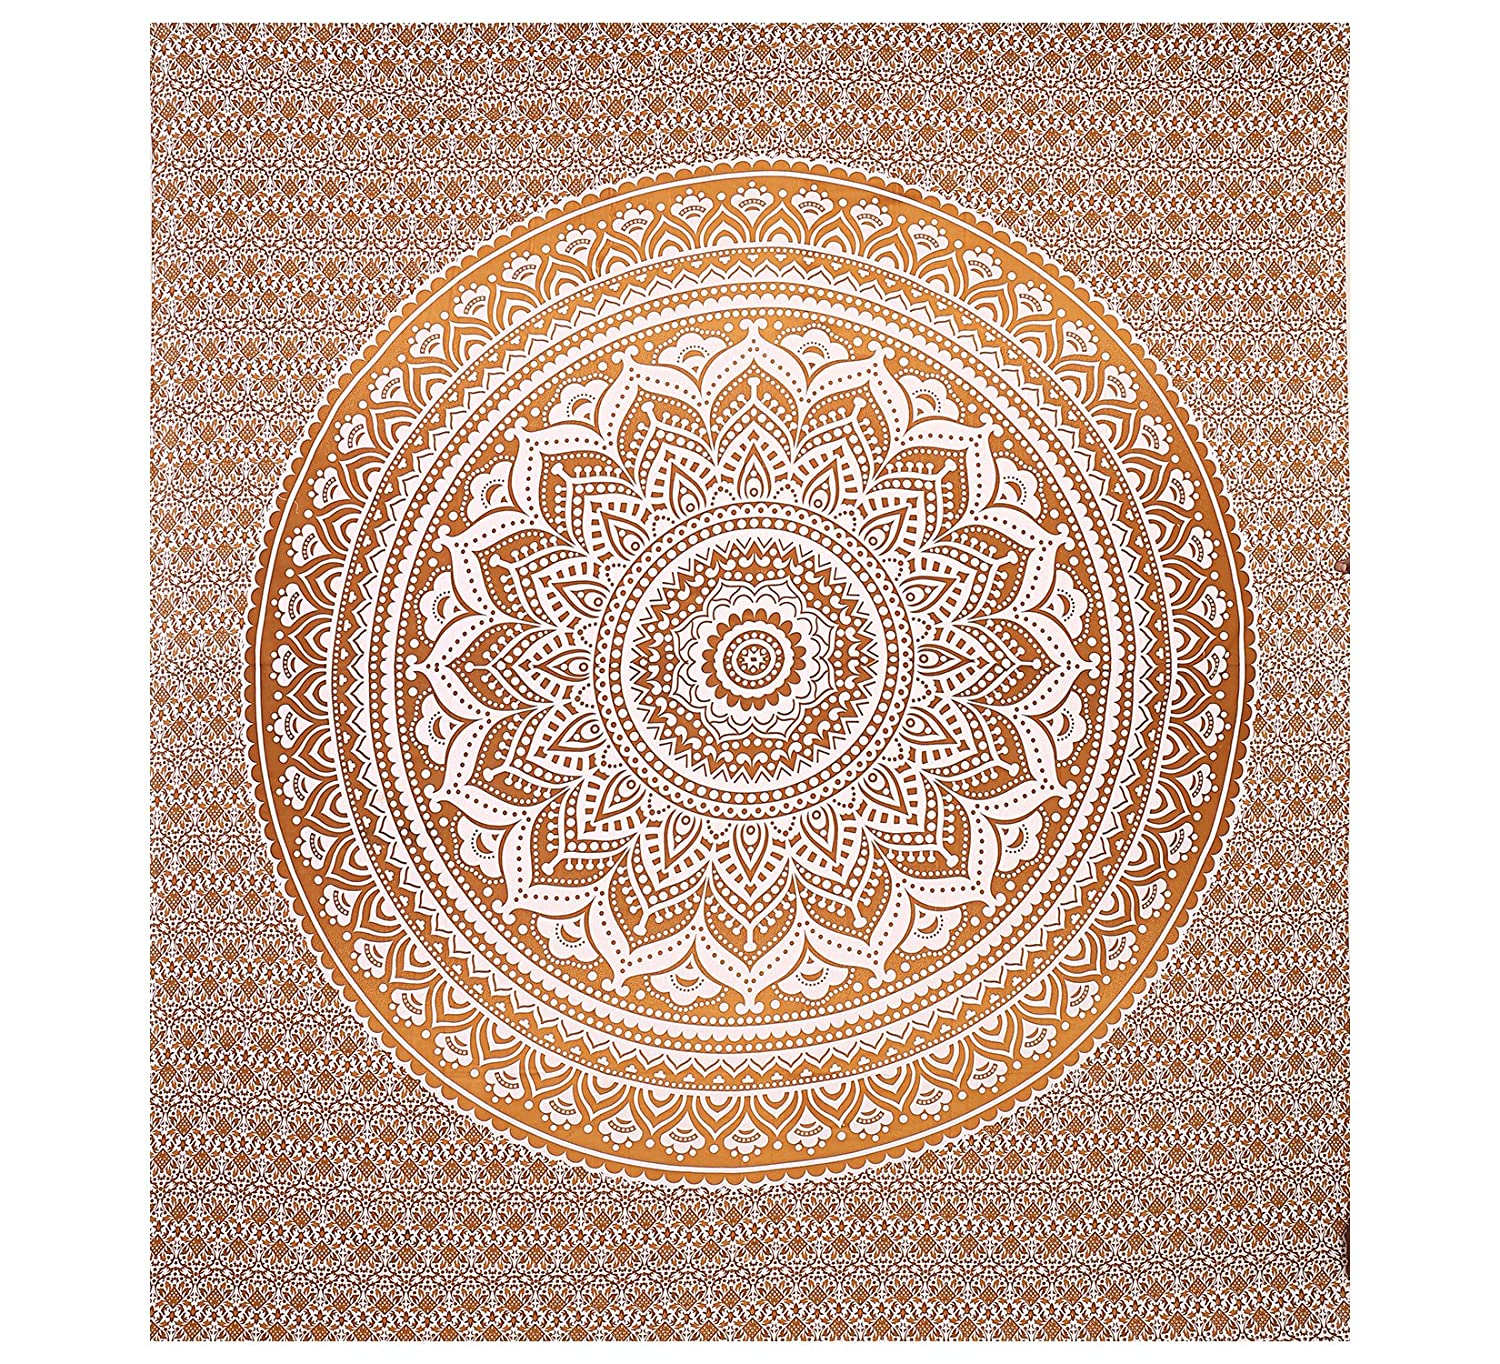 Gokul Handloom Popular Designs Gold Ombre Tapestry Indian Mandala Wall Art Hippie Wall Hanging Bohemian Bedspread Tapestries 90x84 inches